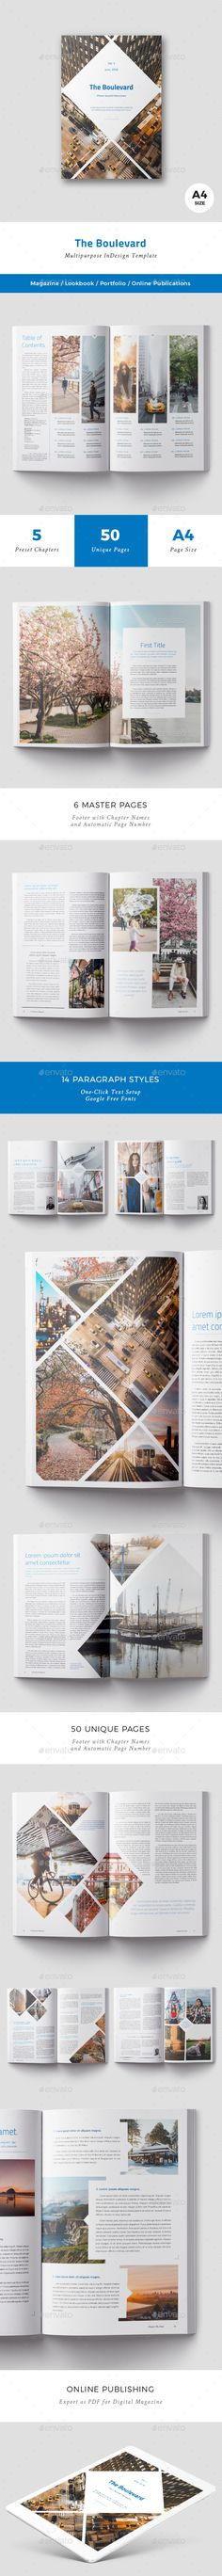 The Boulevard Magazine by ArcticBlue The Boulevard Magazine Template This image based template is here to bring a solution to your project. Change the colors, fonts or